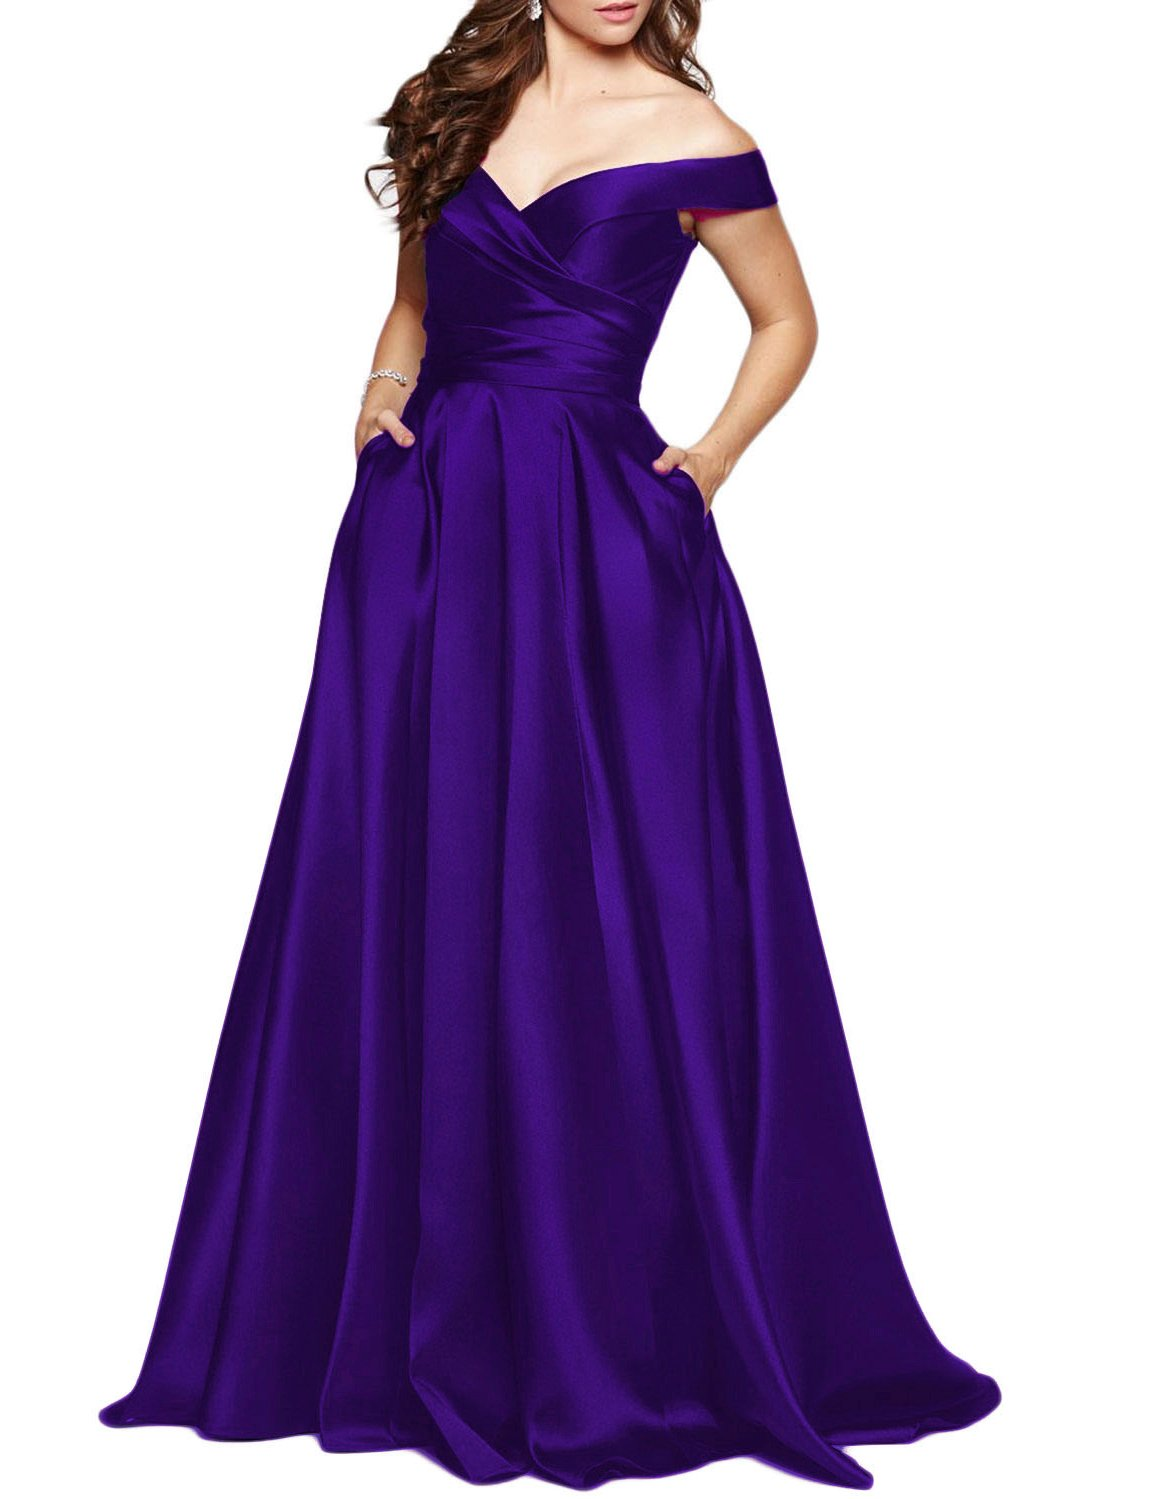 BEAUTBRIDE Women's Off Shoulder Long Prom Dress Evening Gown with Pocket Dark Purple 8